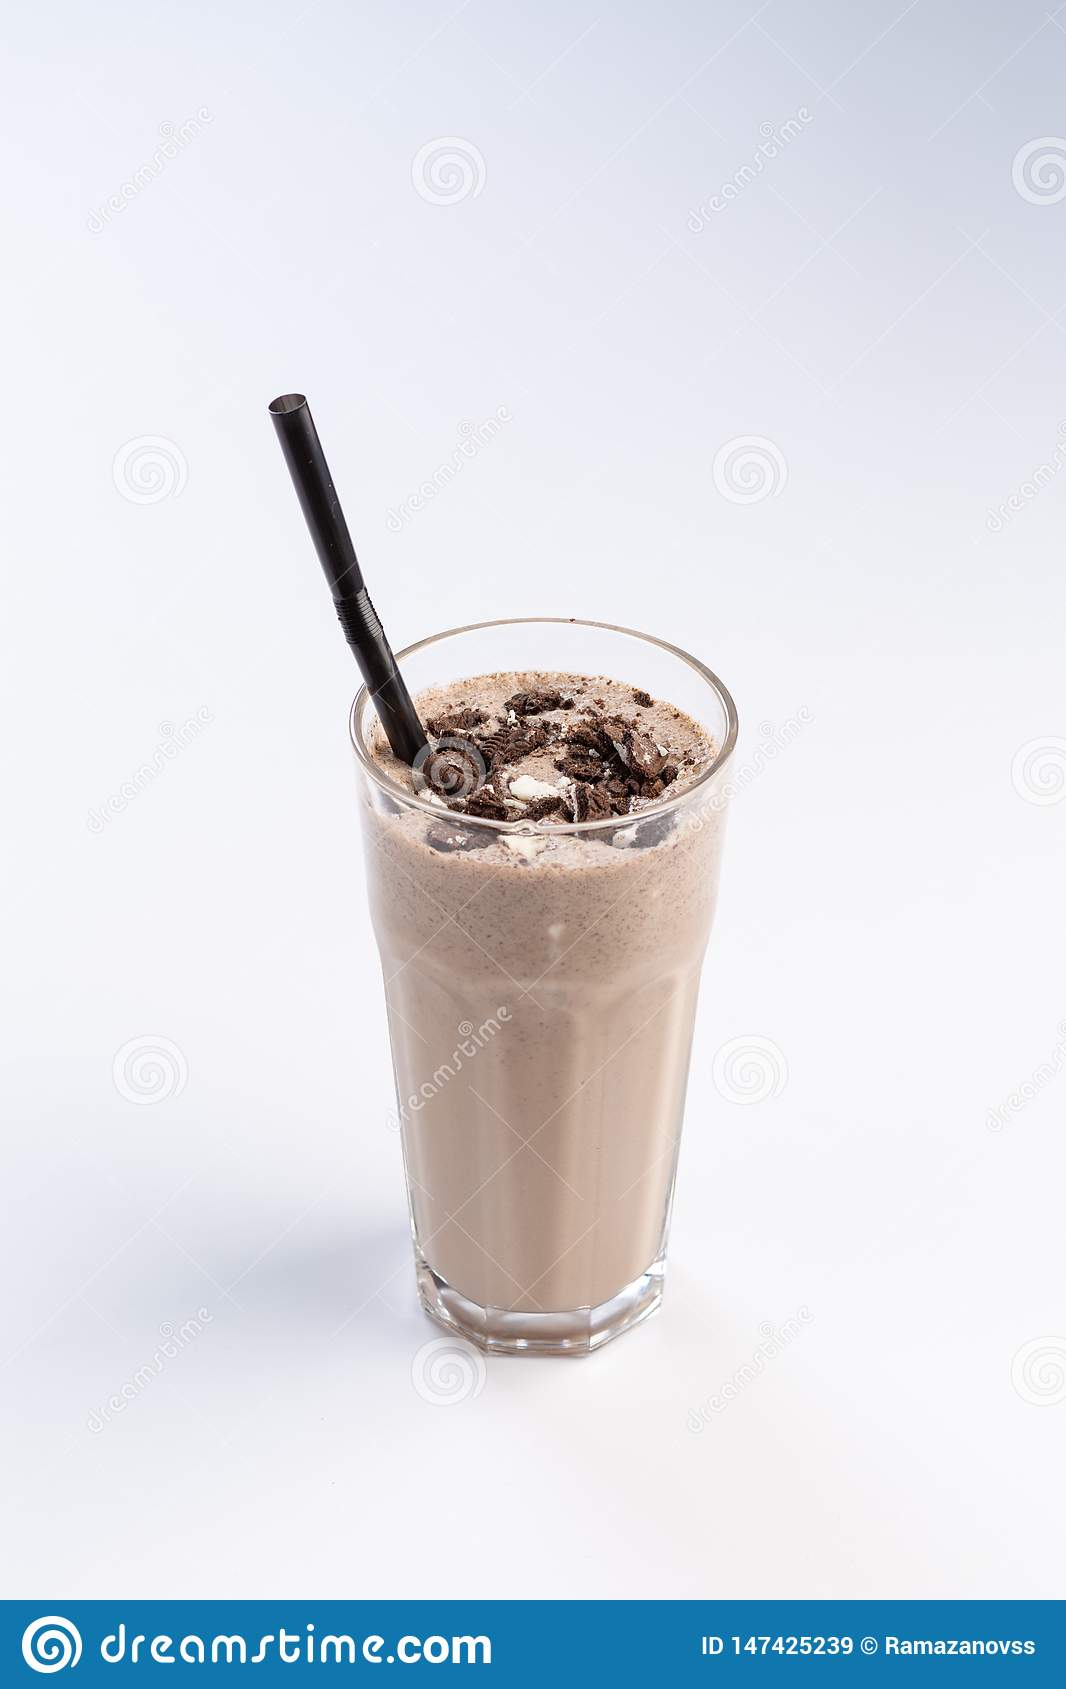 Milk-chocolate cocktail in a tall glass with a straw on white background